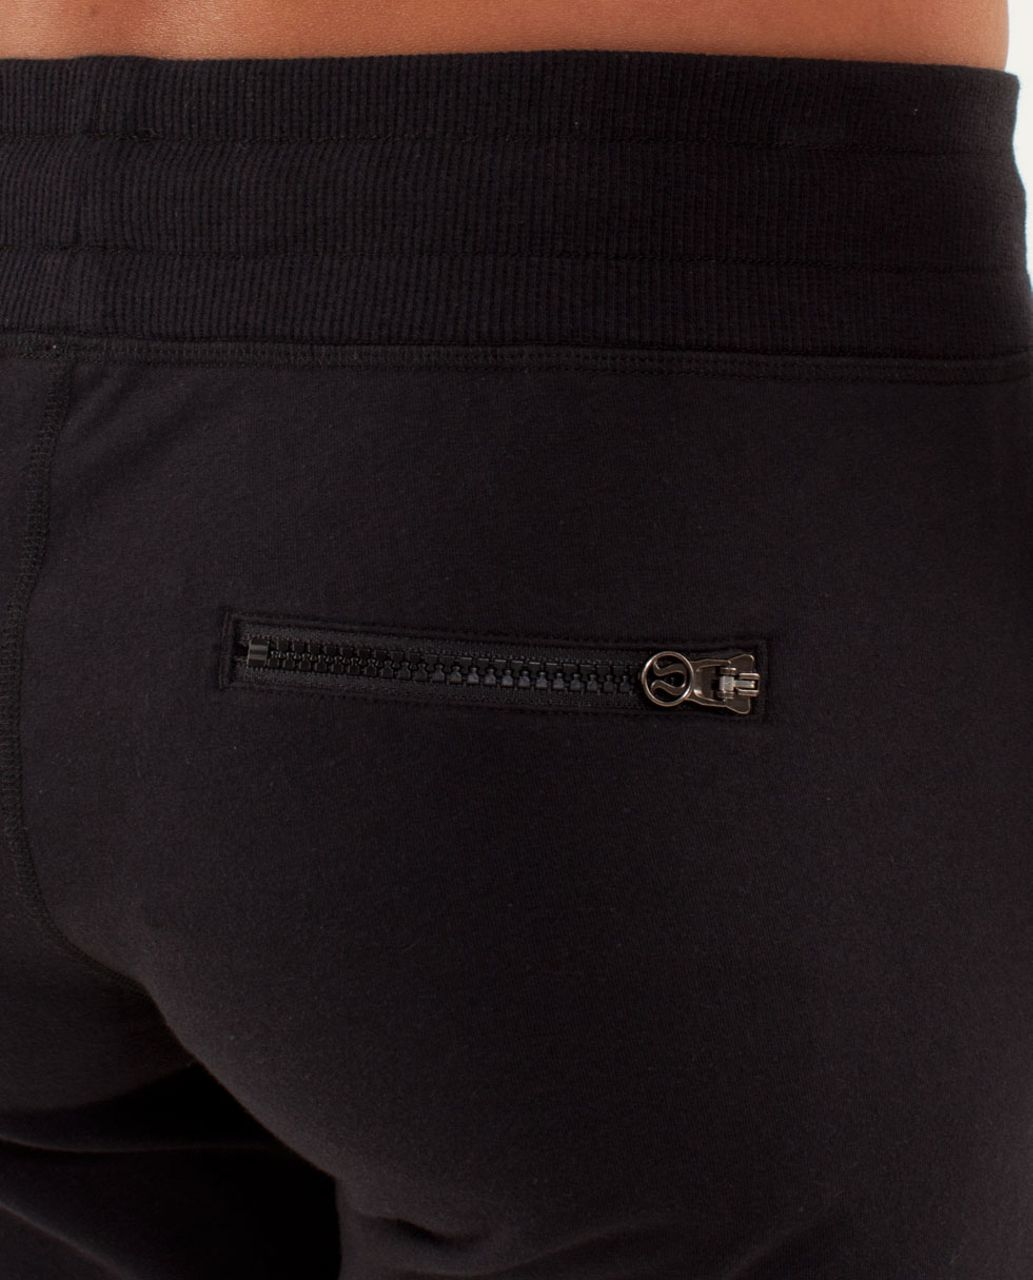 4e1556ee59dfe Lululemon Tea Lounge Crop - Black - lulu fanatics